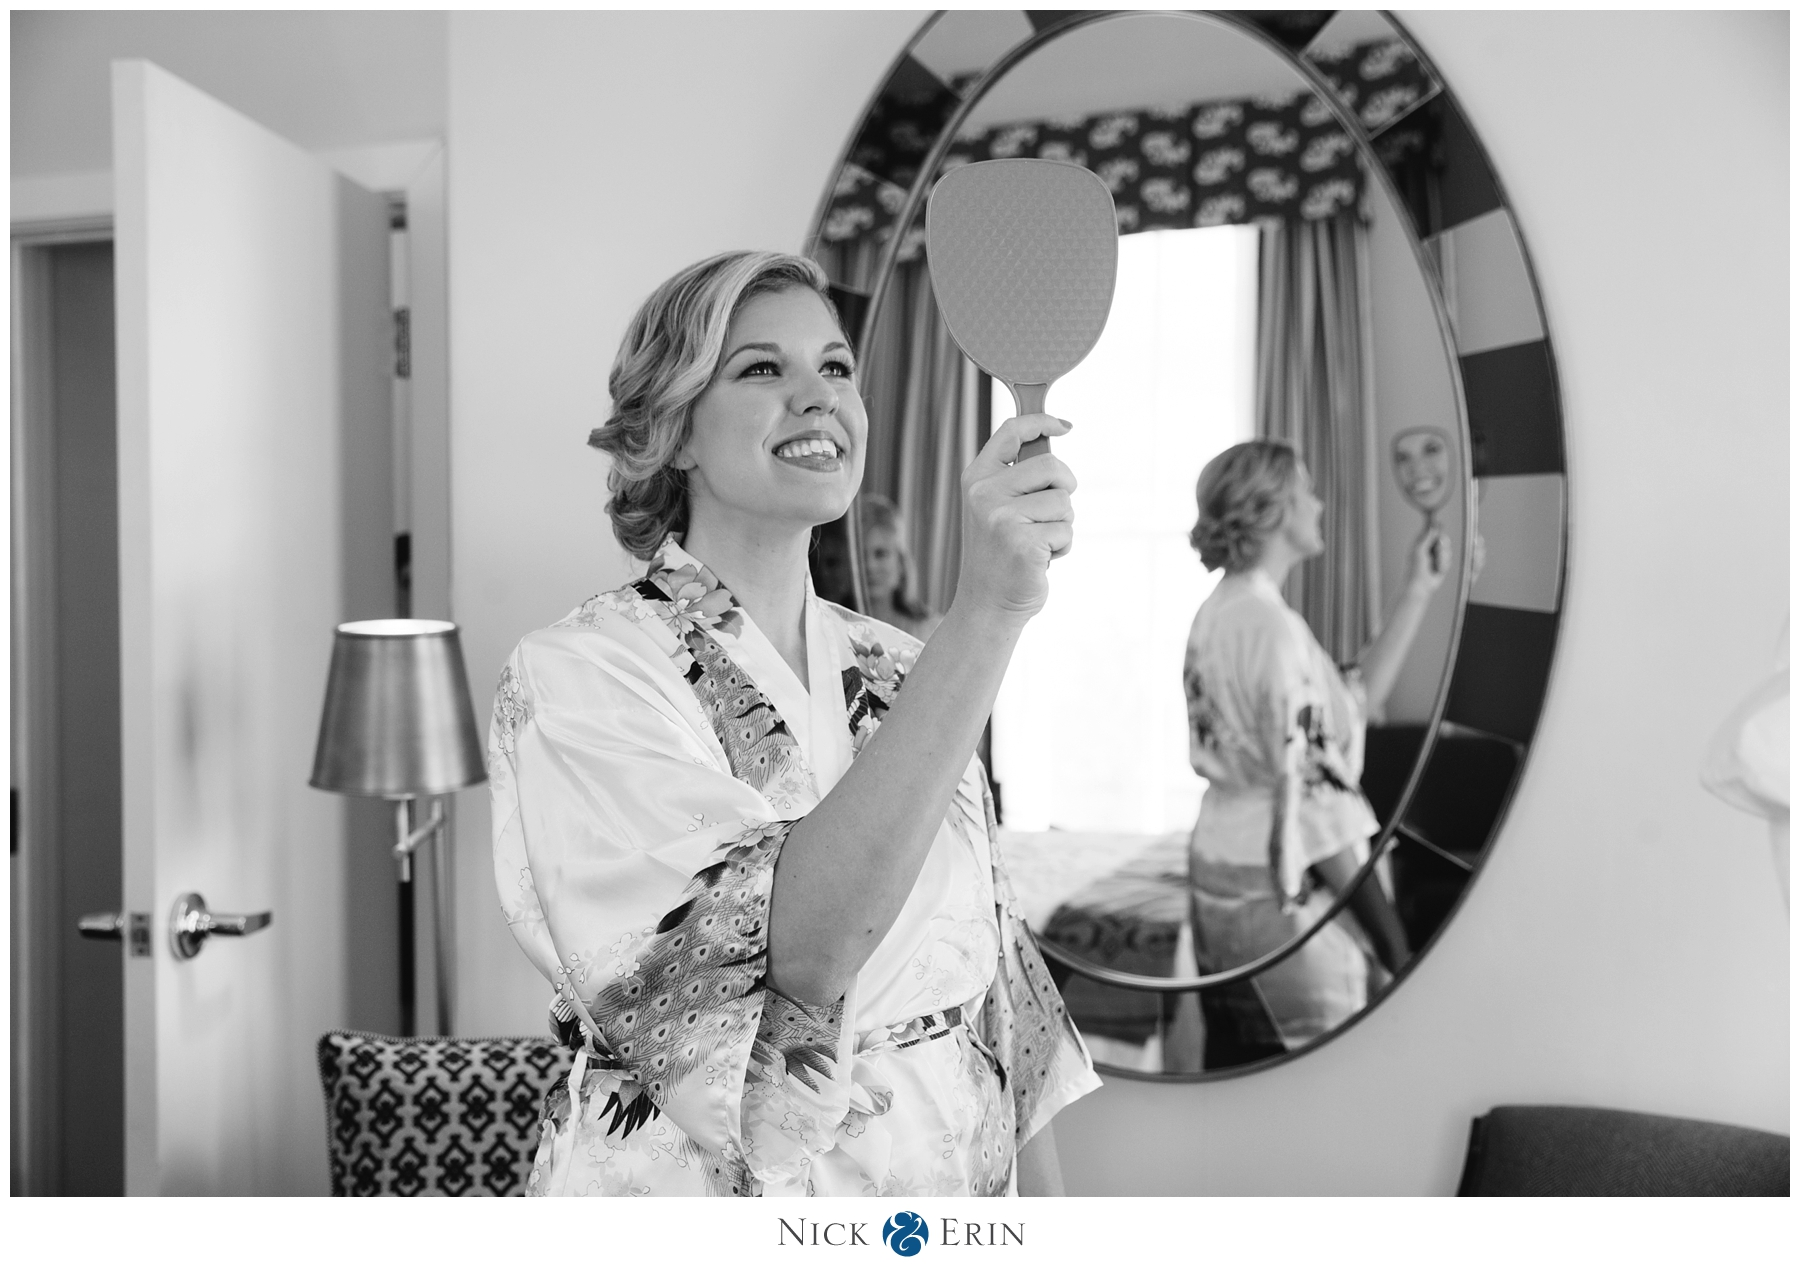 Donner_Photography_Washington DC Wedding_Rachel & Taylor_0014